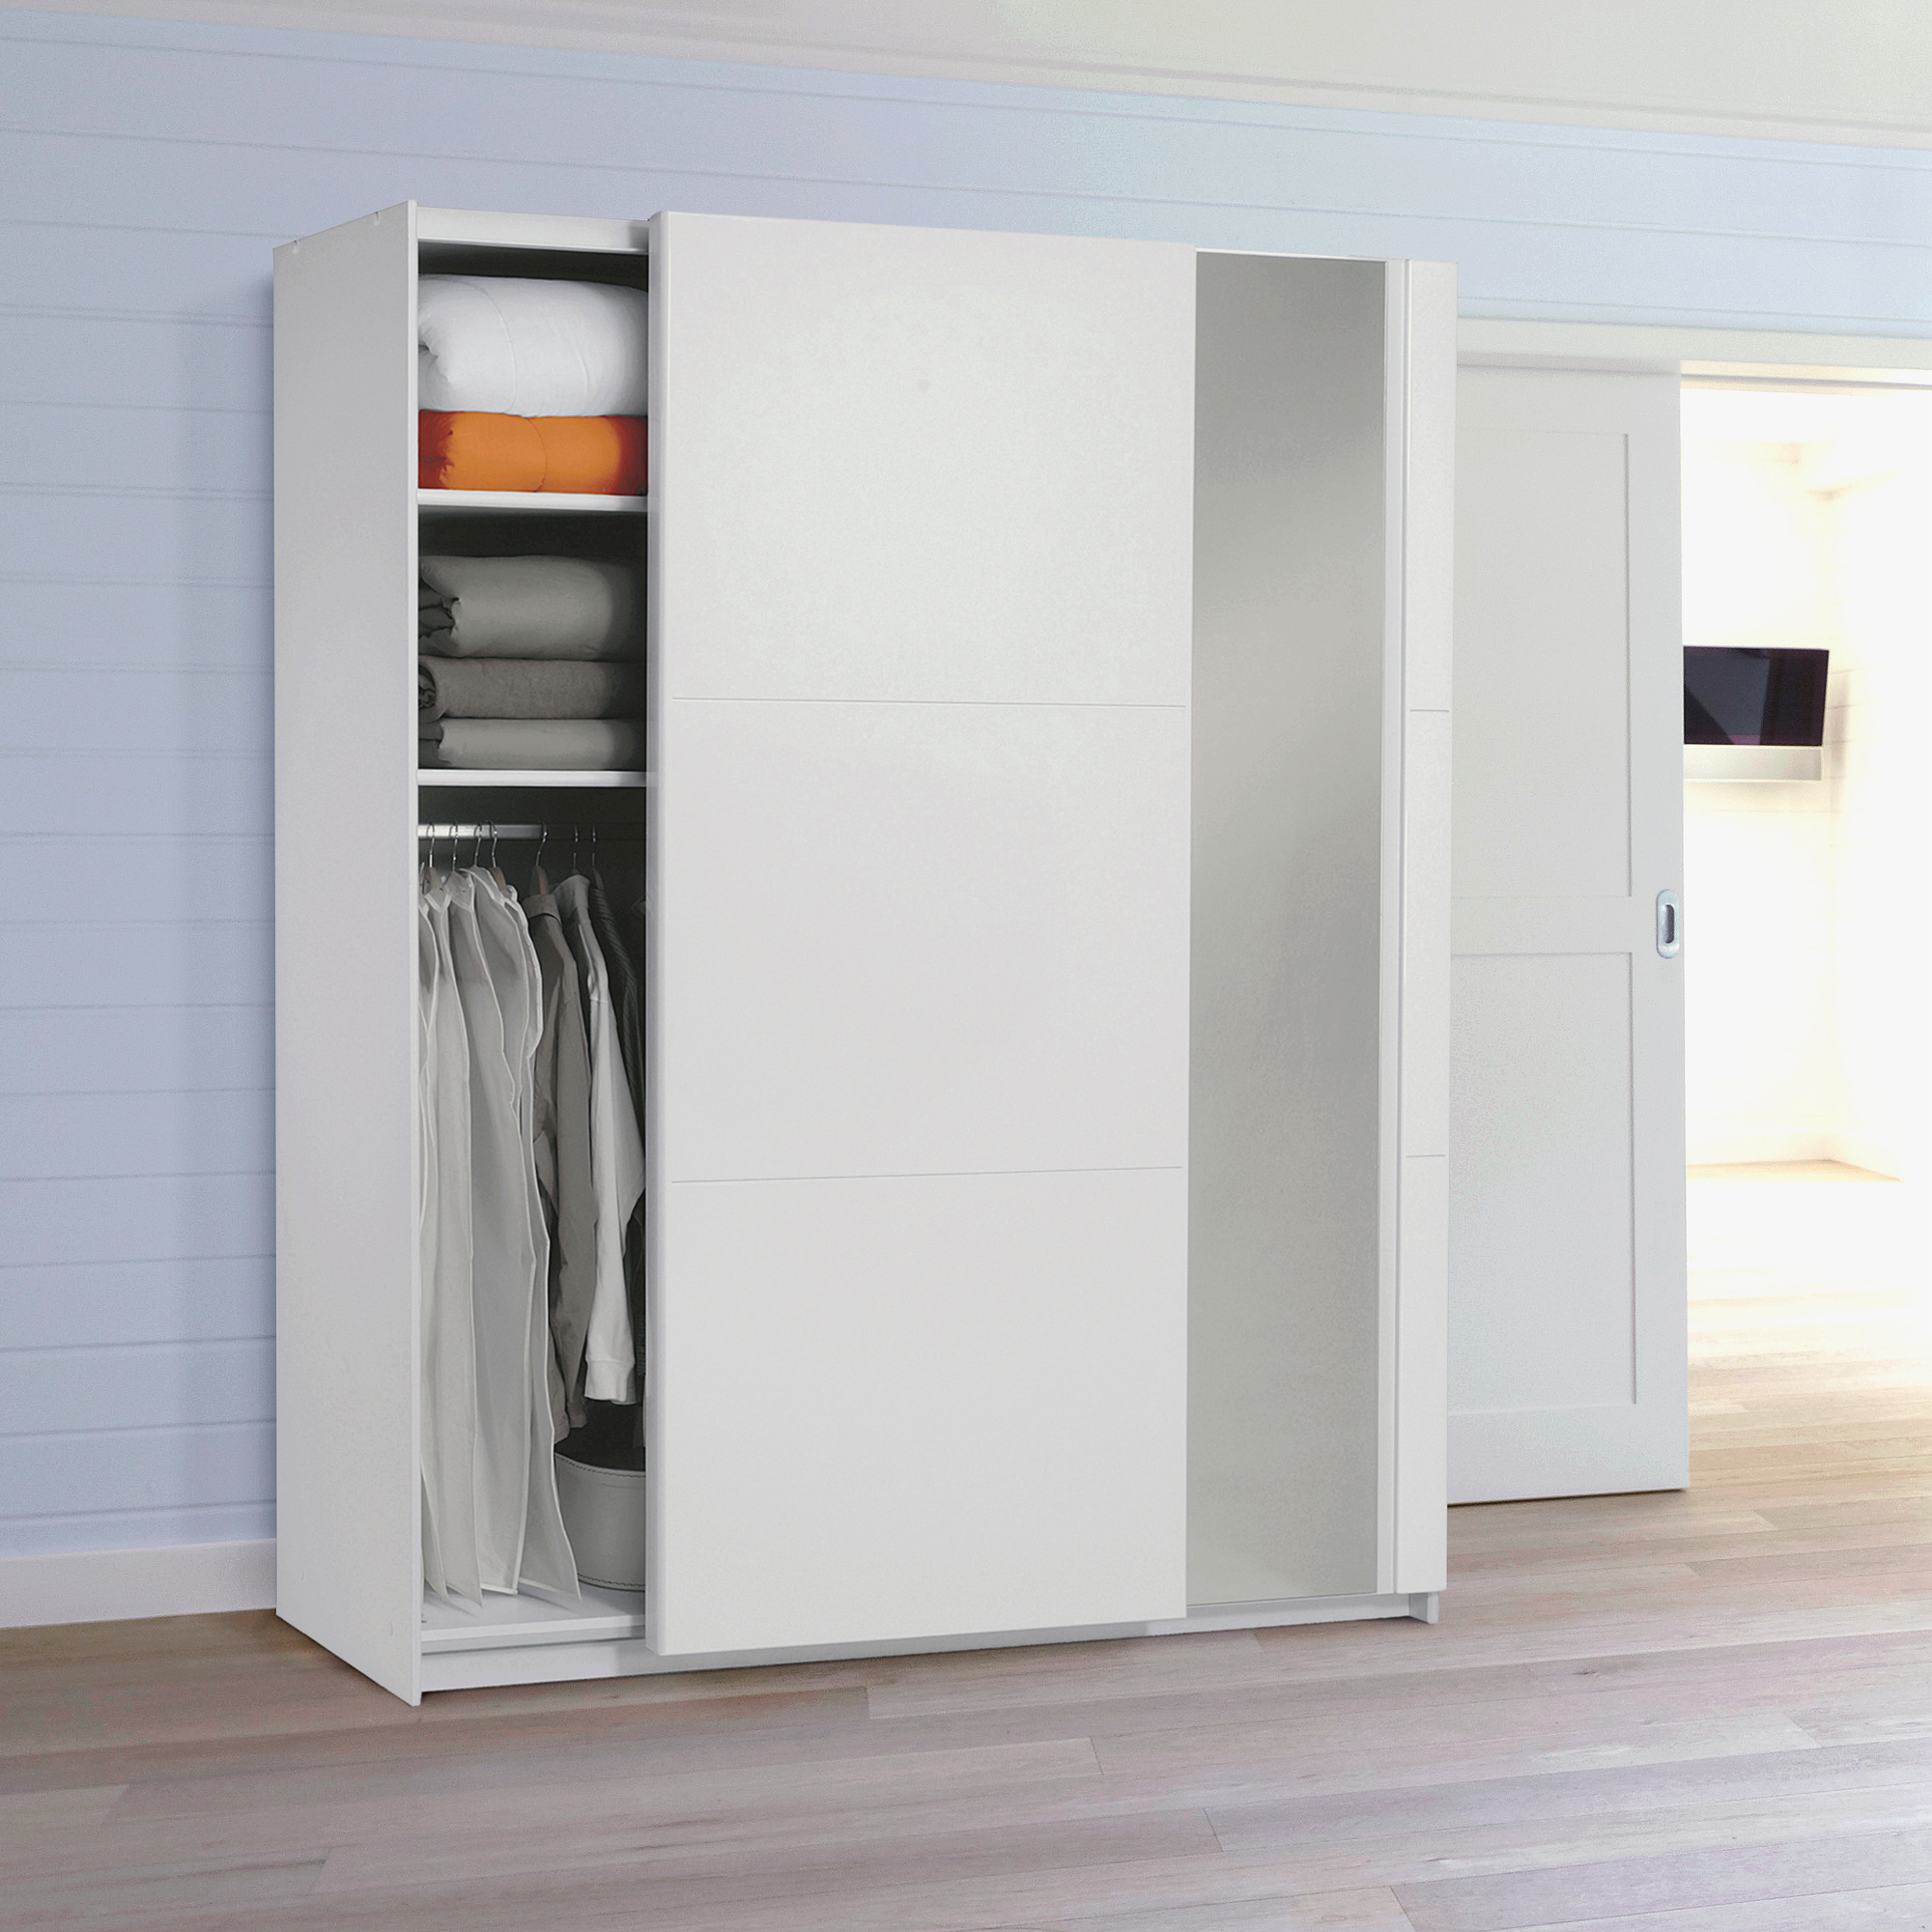 Fly Armoire Porte Coulissante Stunning Affordable